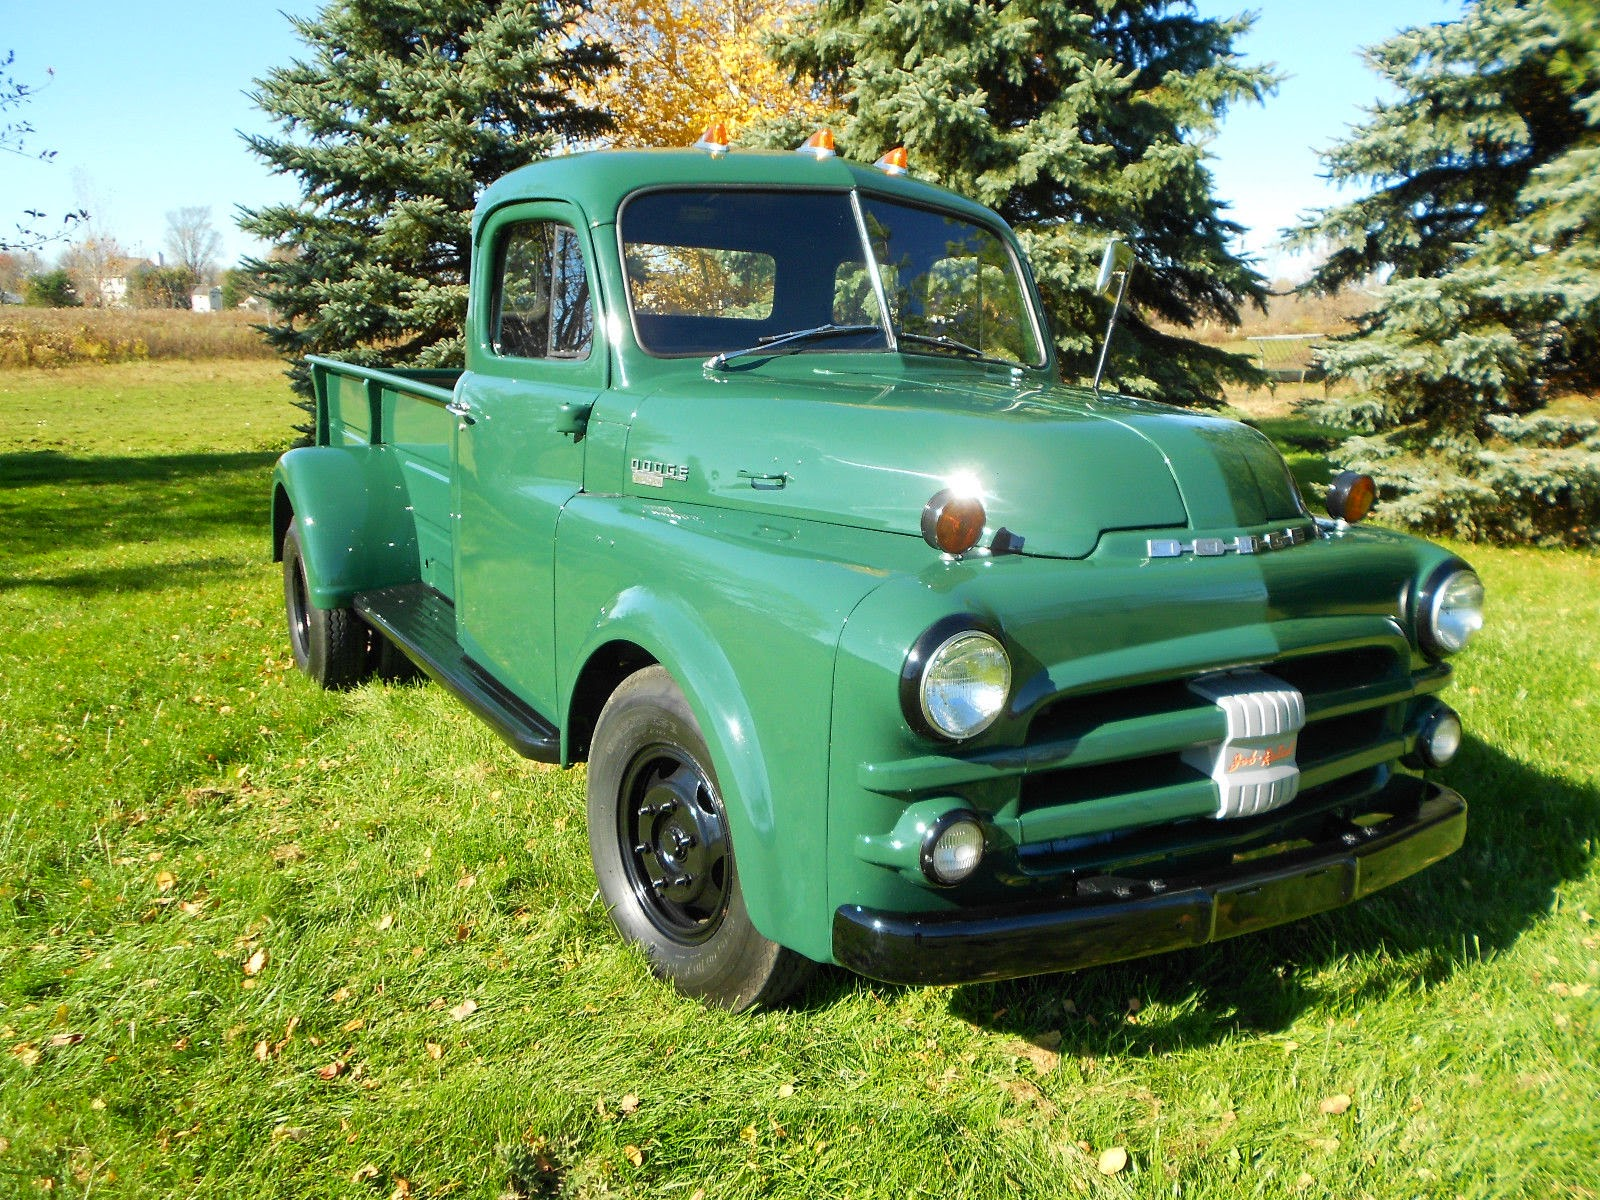 car trucks for sale in craigslist with Rare 1951 Dodge B Series Dually Pickup on 1968 Cadillac Deville For Sale In Westford Massachusetts 01886 together with Al Ritters Wicked Cool 1952 Chevy 3100 besides 1953 56 Ford Truck Short Bed also 43035 1985 Ford Thunderbird Elan 50 V8 Garage Kept 71k Miles further Spring Special 1965 Ford Econoline Pickup.